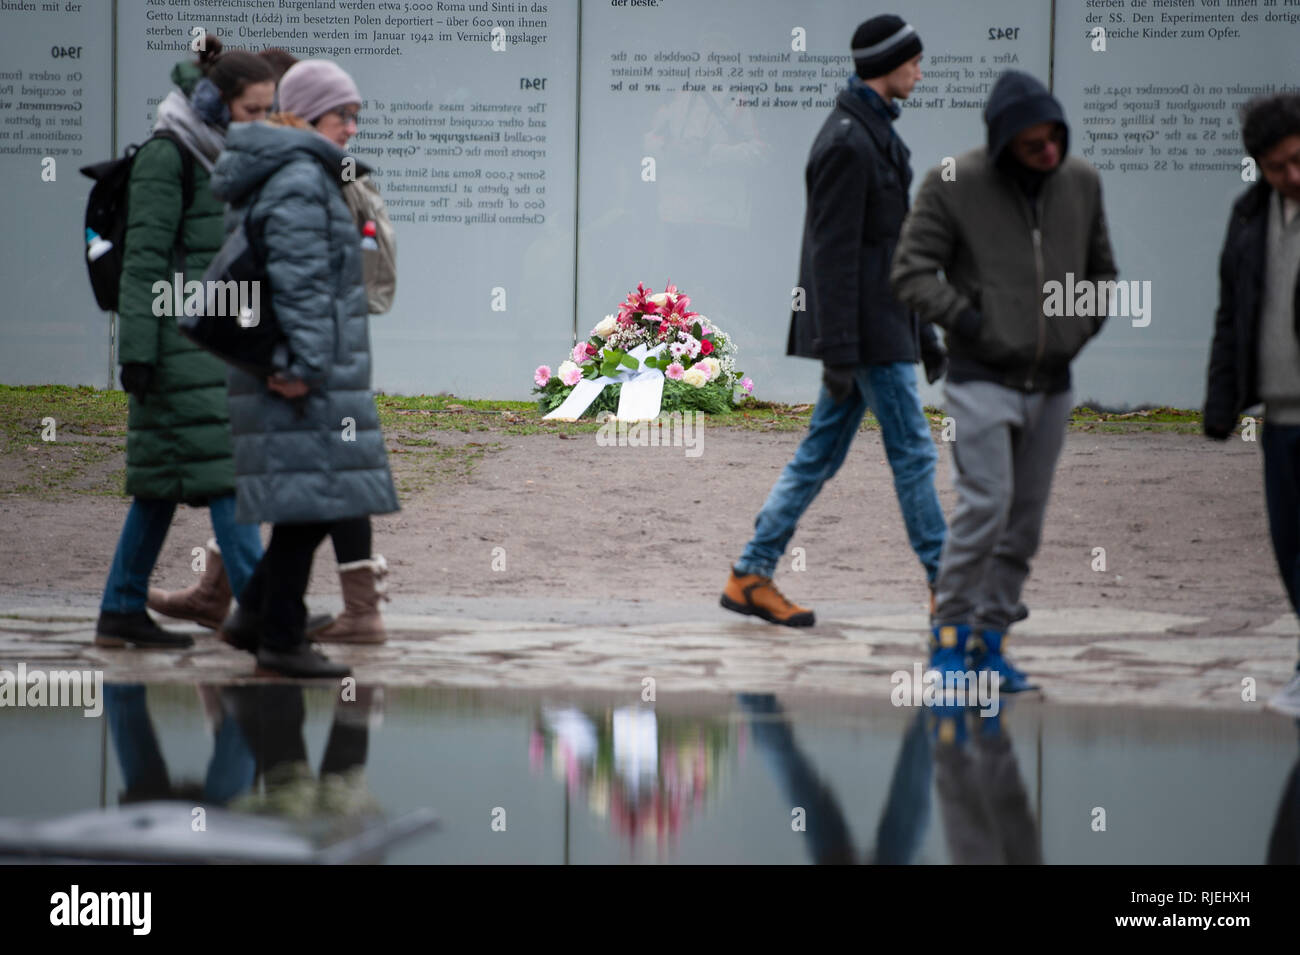 Berlin, Germany. 27th January 2019. Today marks the International Holocaust Remembrance Day, an annual day of commemoration developed to help prevent  - Stock Image